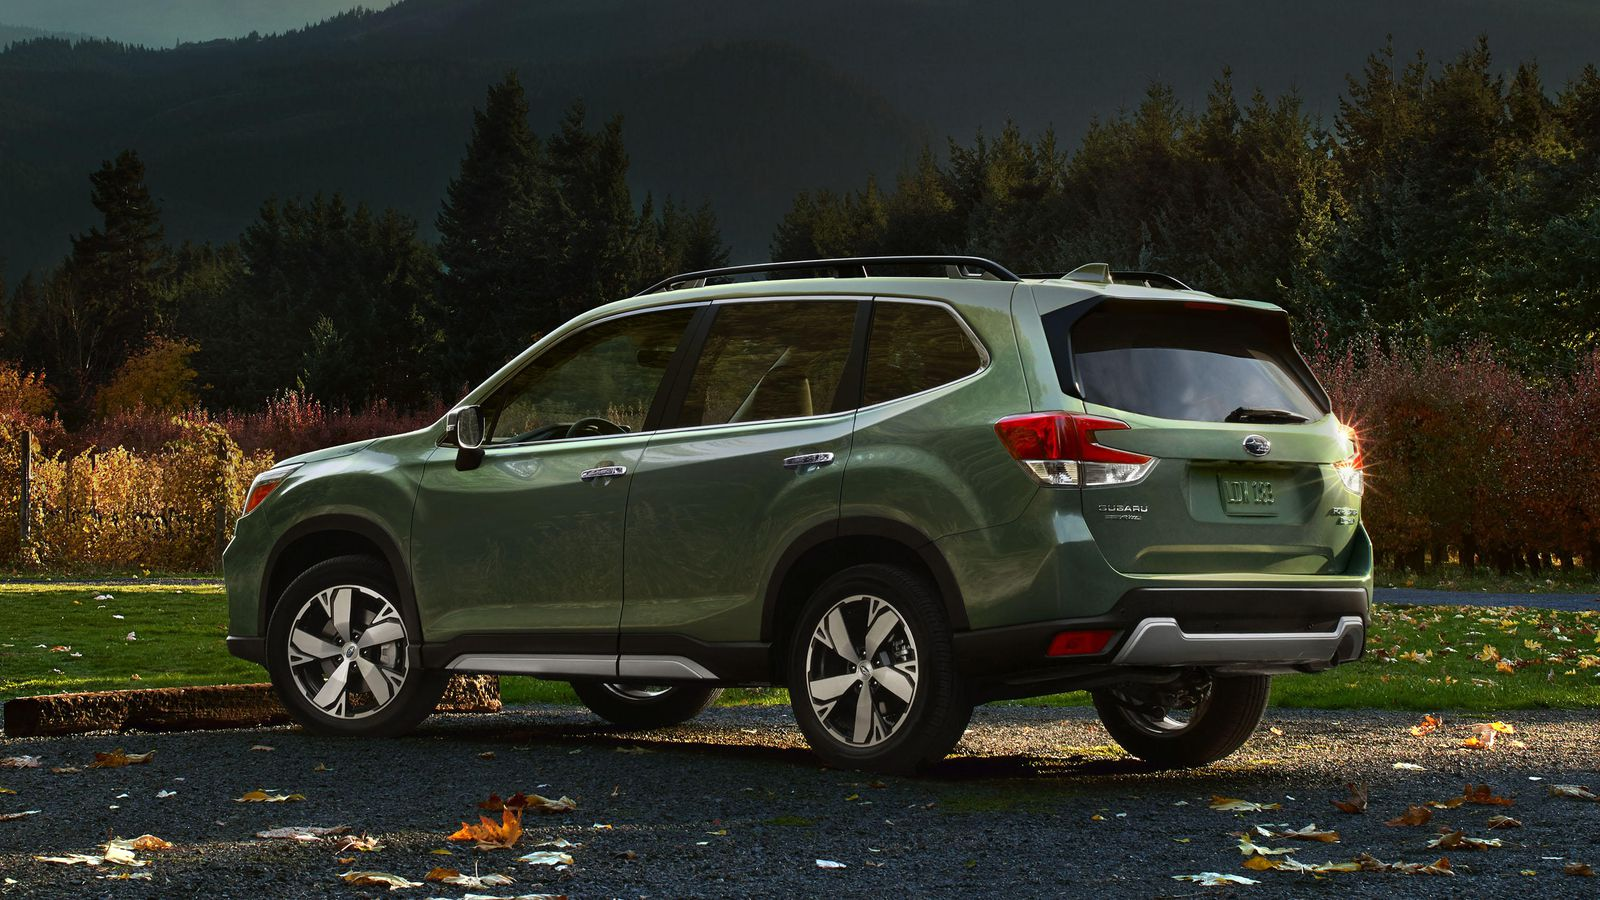 2019 Subaru Forester The Evolution Has Finally Arrived